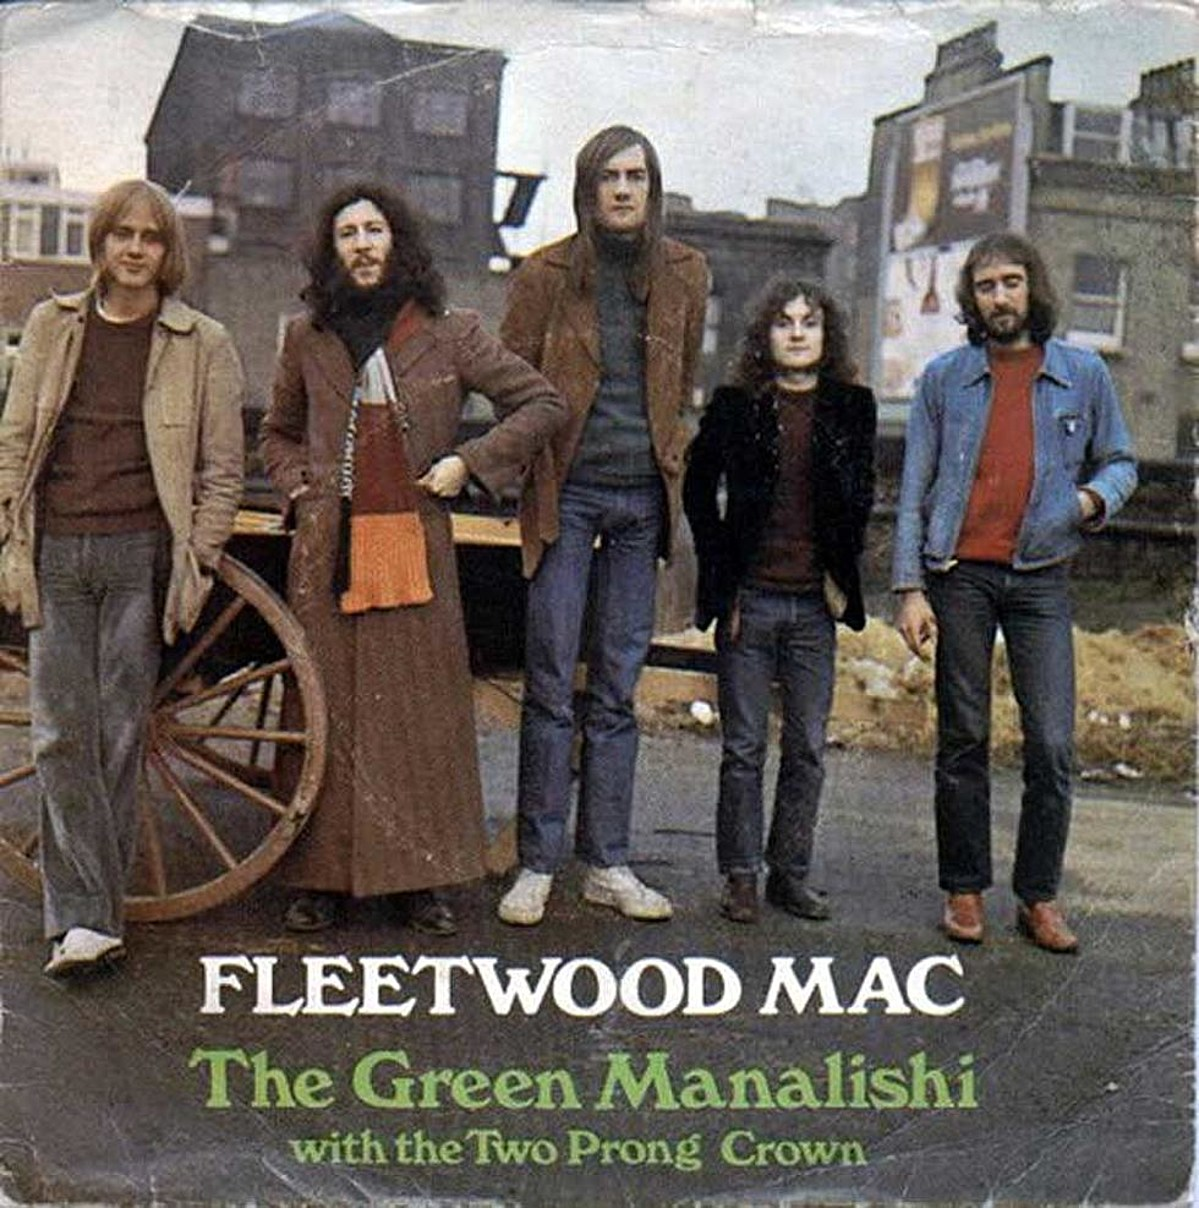 Fleetwood Mac co-founder Peter Green has died